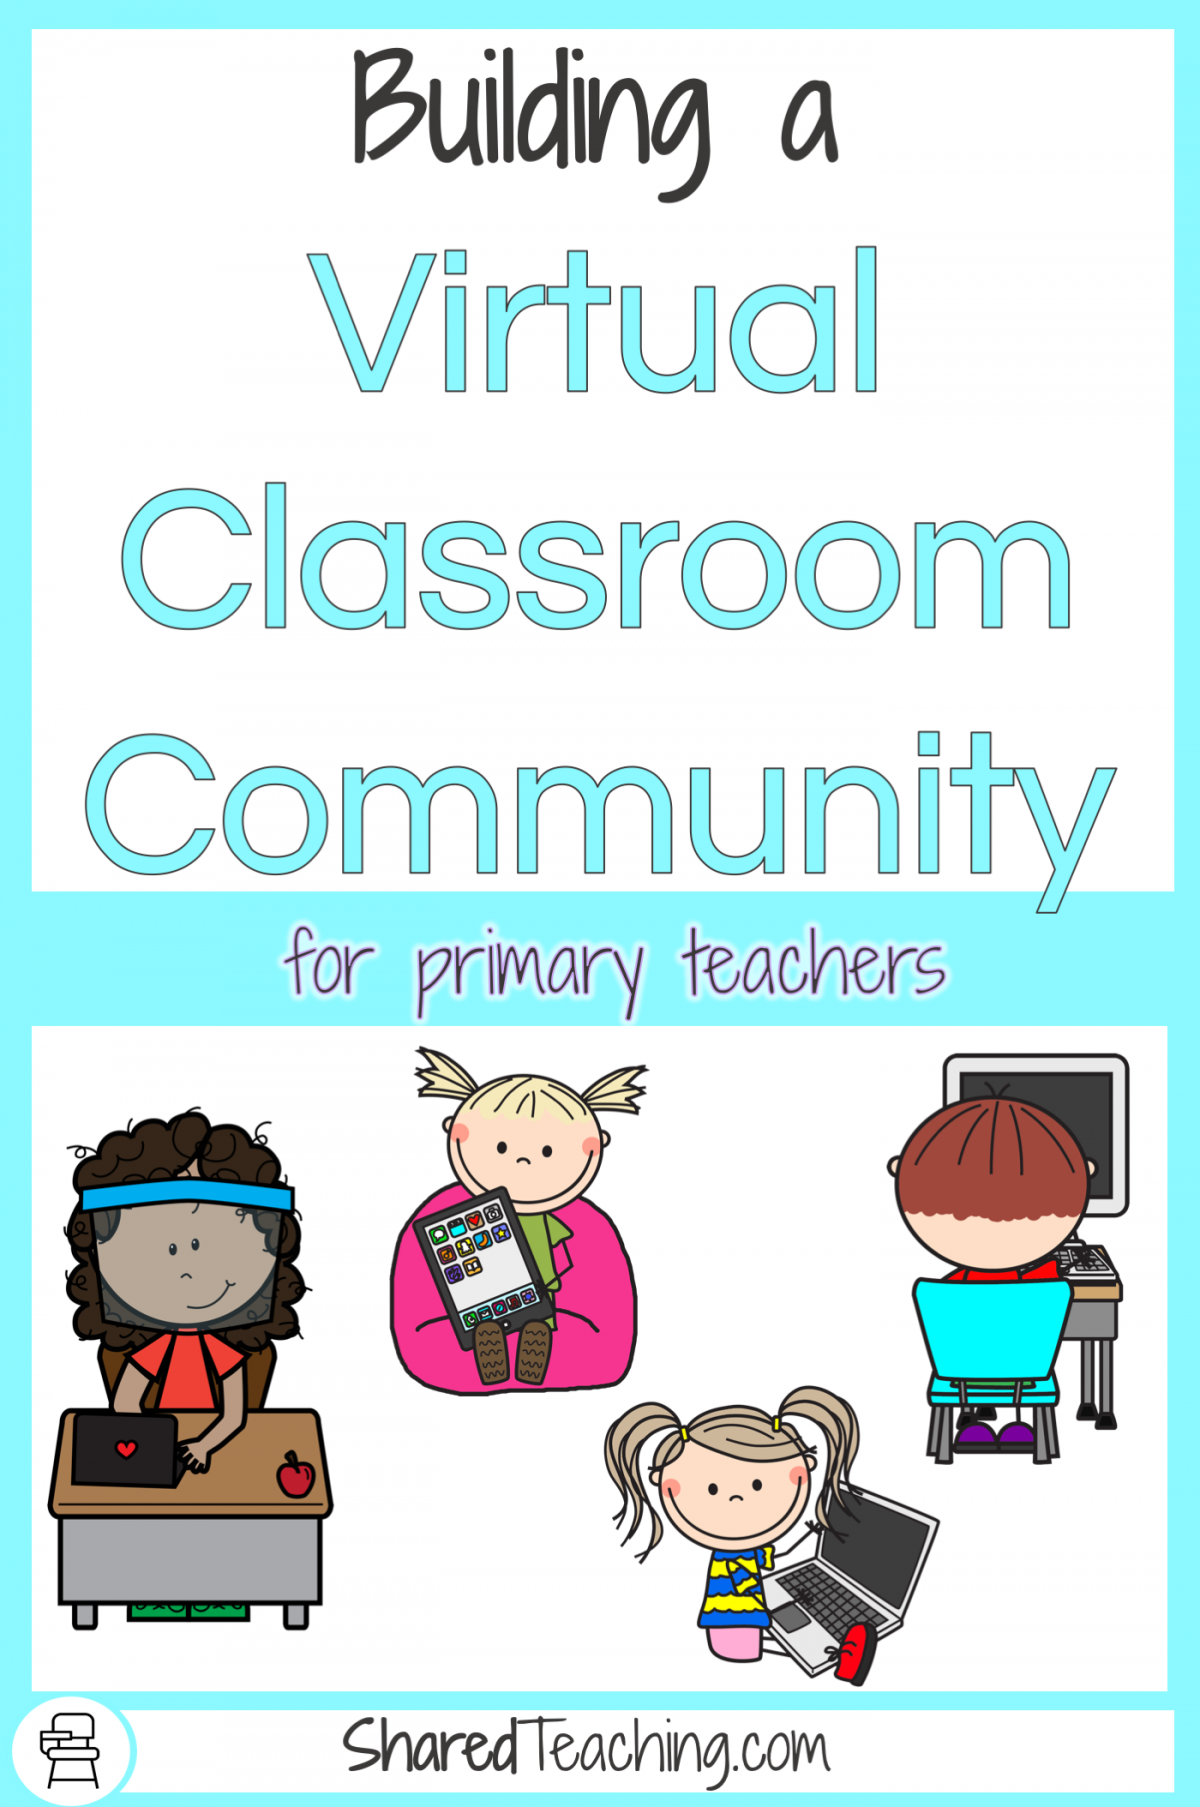 Building a virtual classroom community for primary teachers